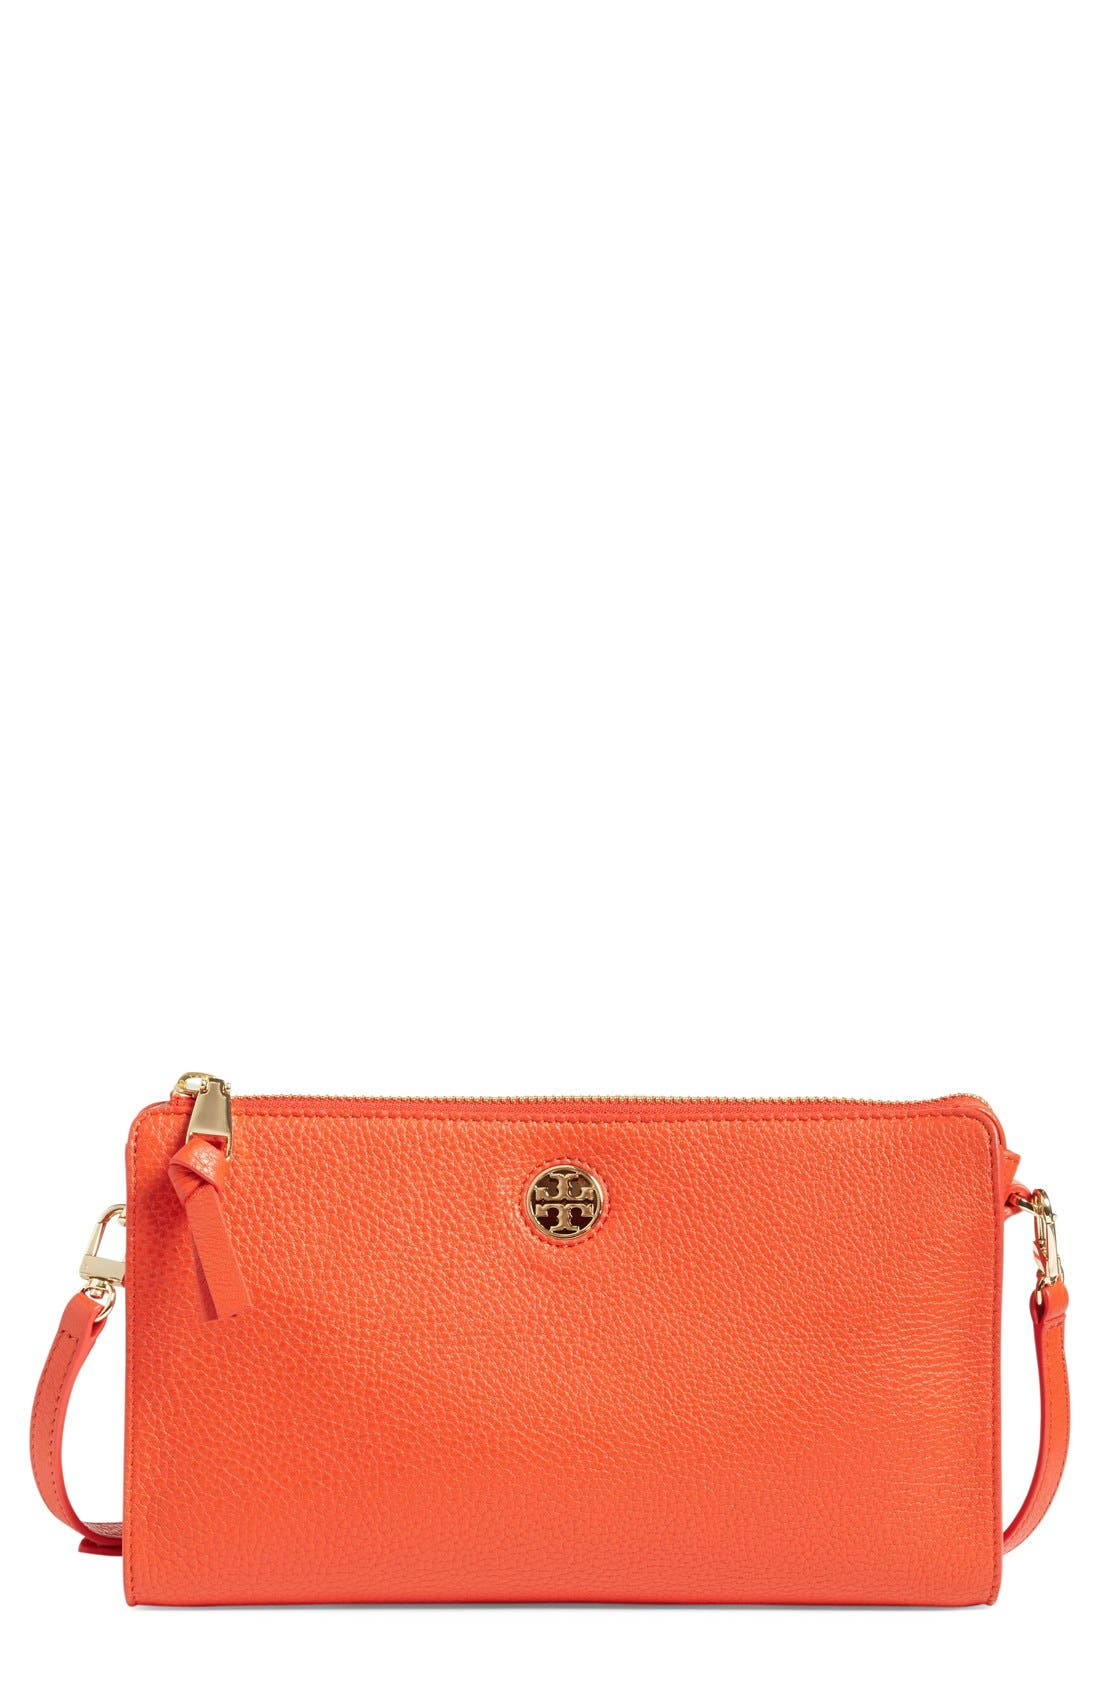 Alternate Image 1 Selected - Tory Burch 'Robinson' Pebbled Leather Crossbody Wallet